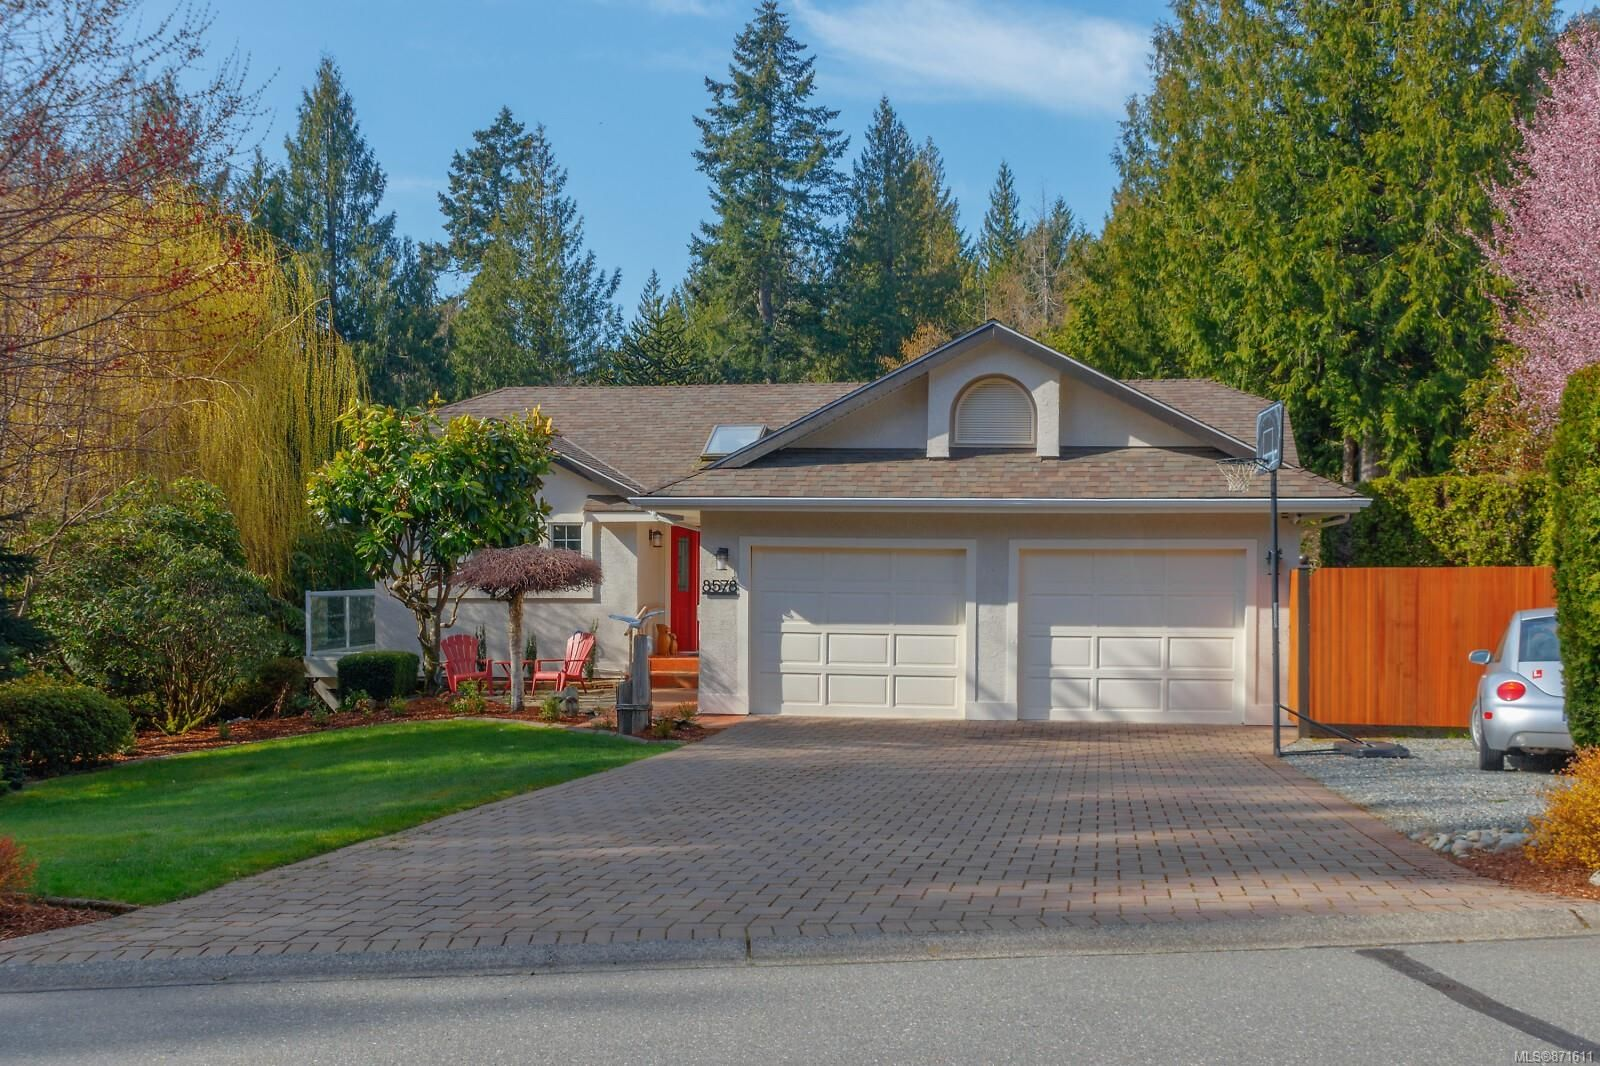 Main Photo: 8578 Kingcome Cres in : NS Dean Park House for sale (North Saanich)  : MLS®# 871611